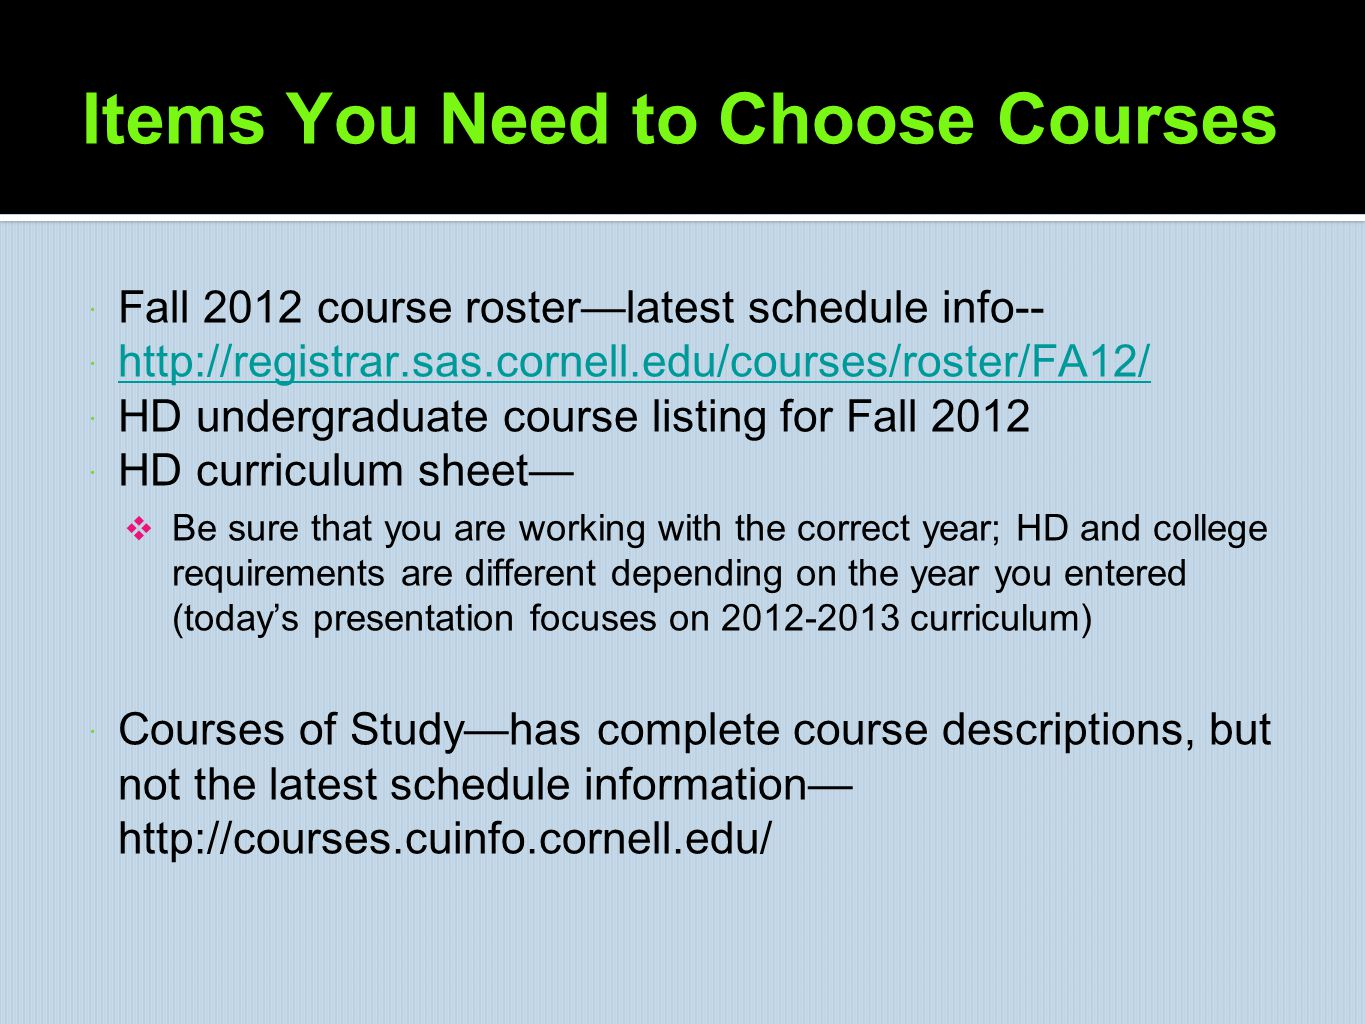 Items You Need to Choose Courses  Fall 2012 course roster—latest schedule info--  http://registrar.sas.cornell.edu/courses/roster/FA12/ http://regis